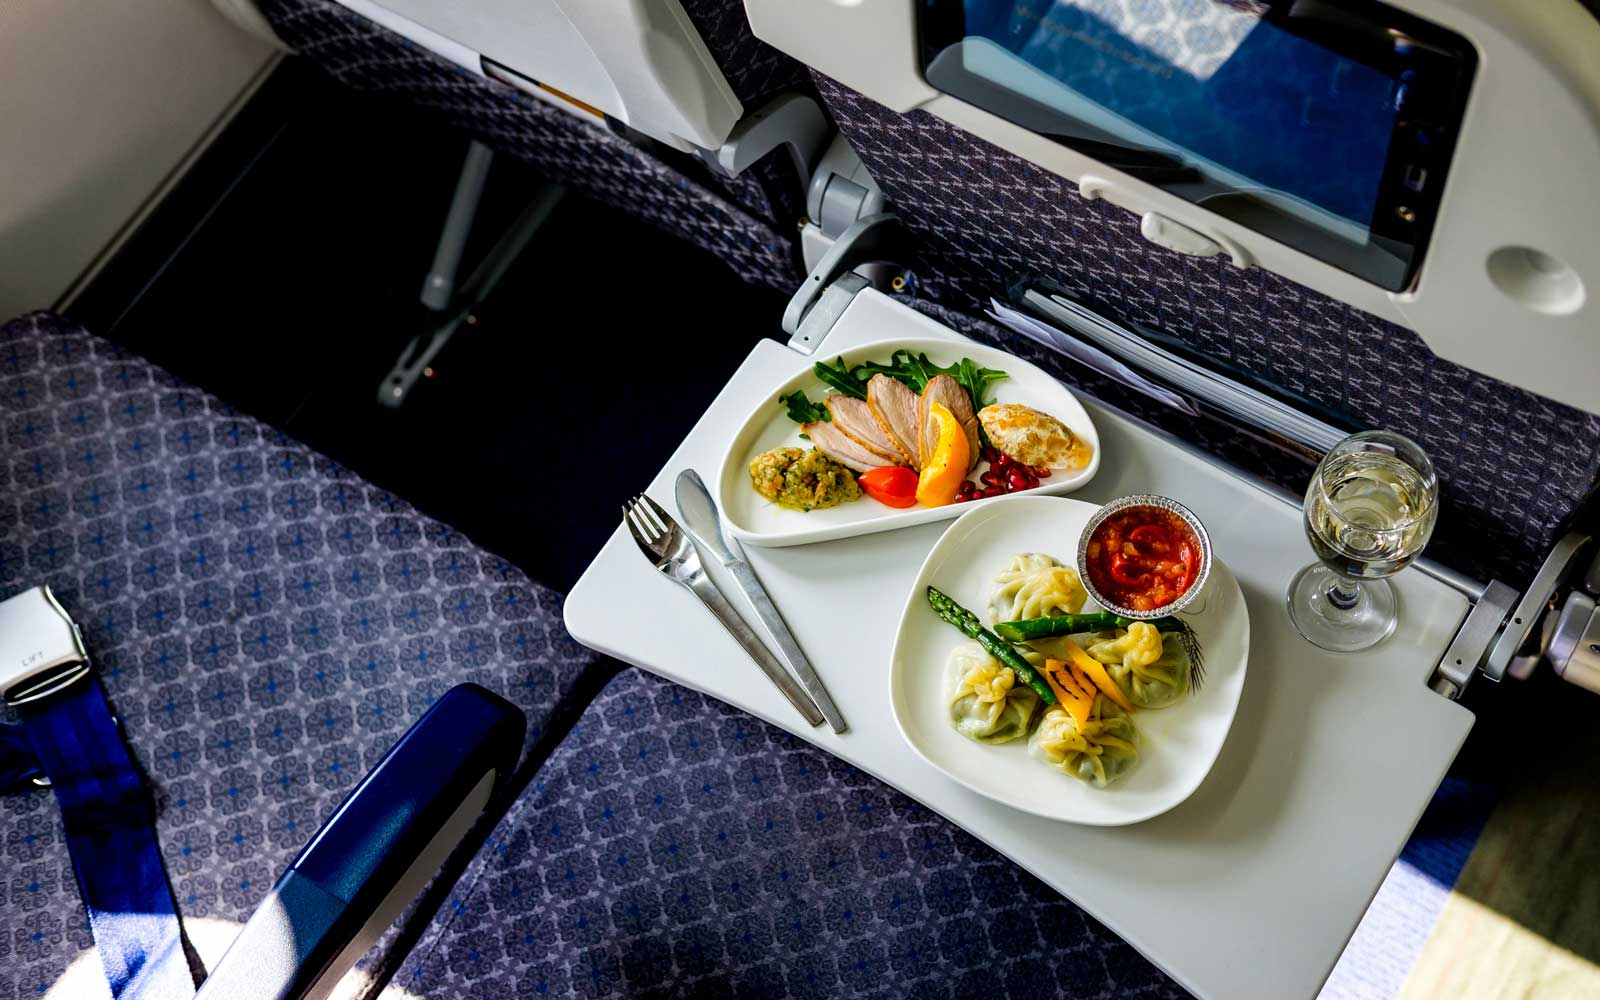 Meal on airplane food tray table